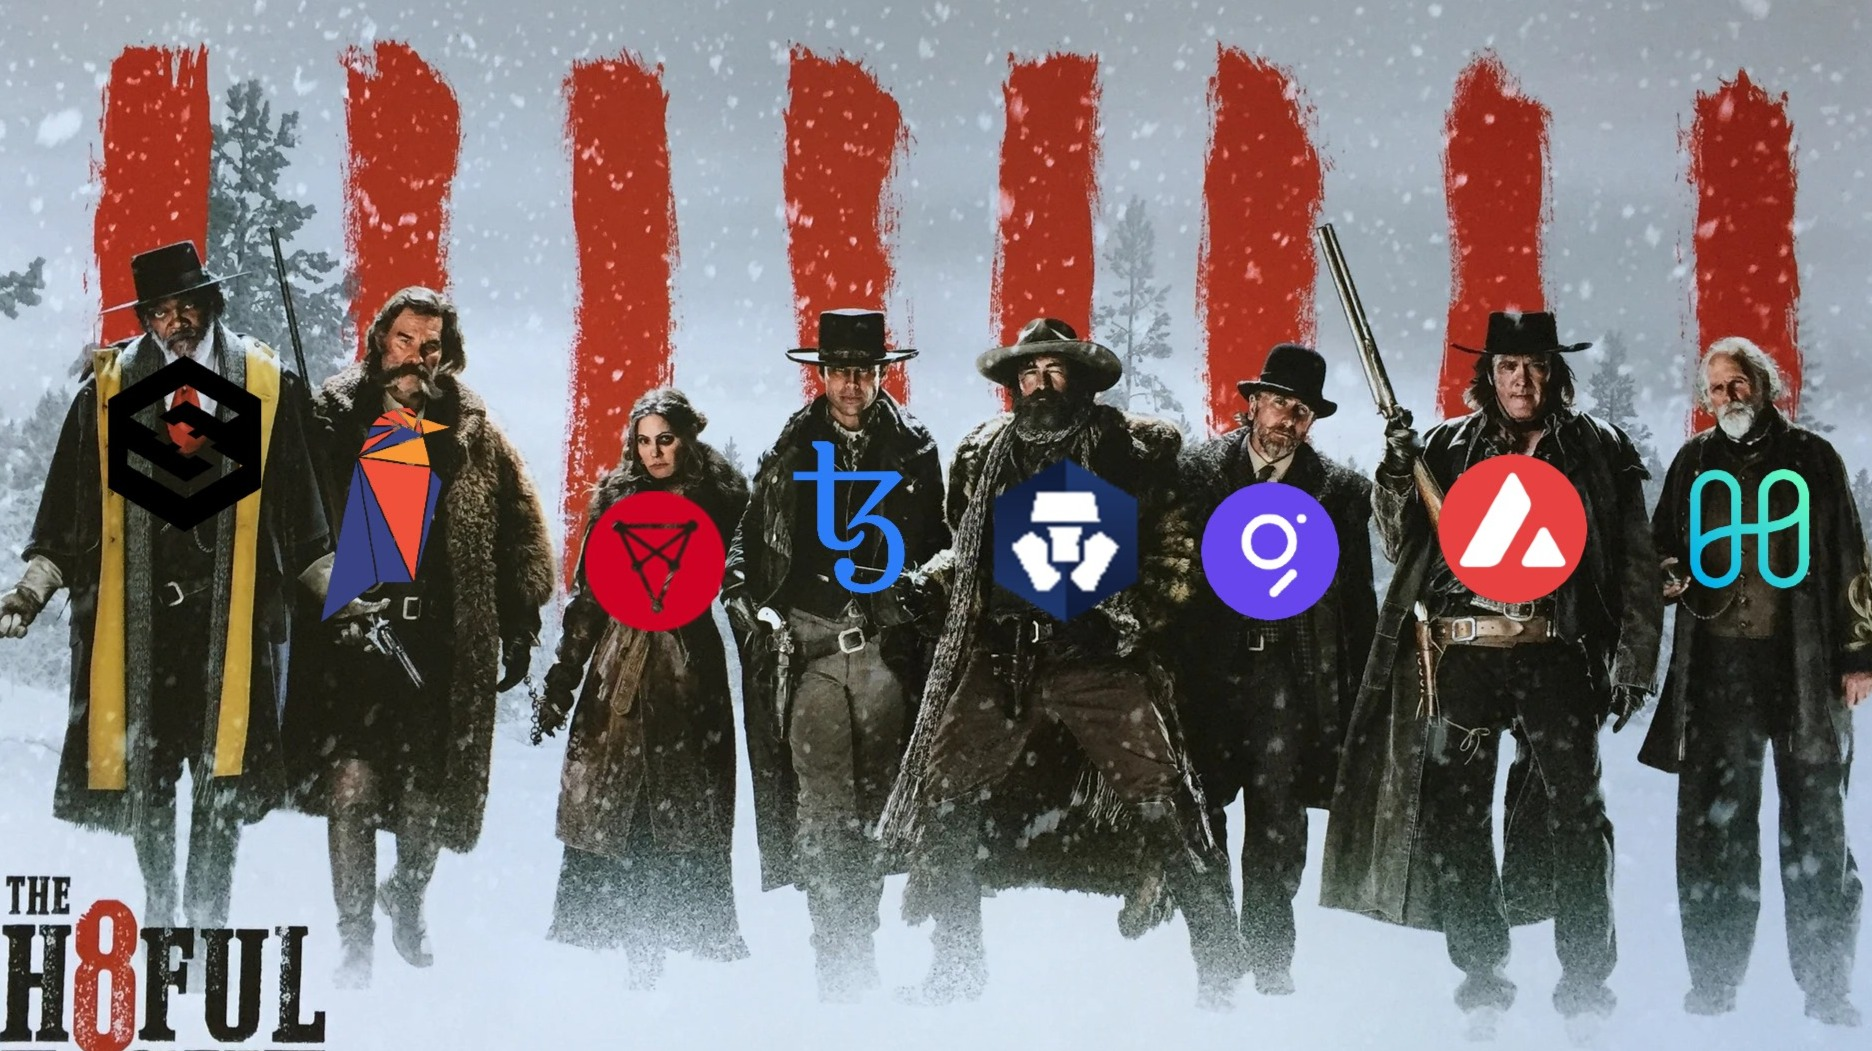 The Hateful Eight: XTZ, IOST, GRT, CHZ, CRO, AVAX, RVN, ONE – Biggest Losers from April 16th to April 23rd